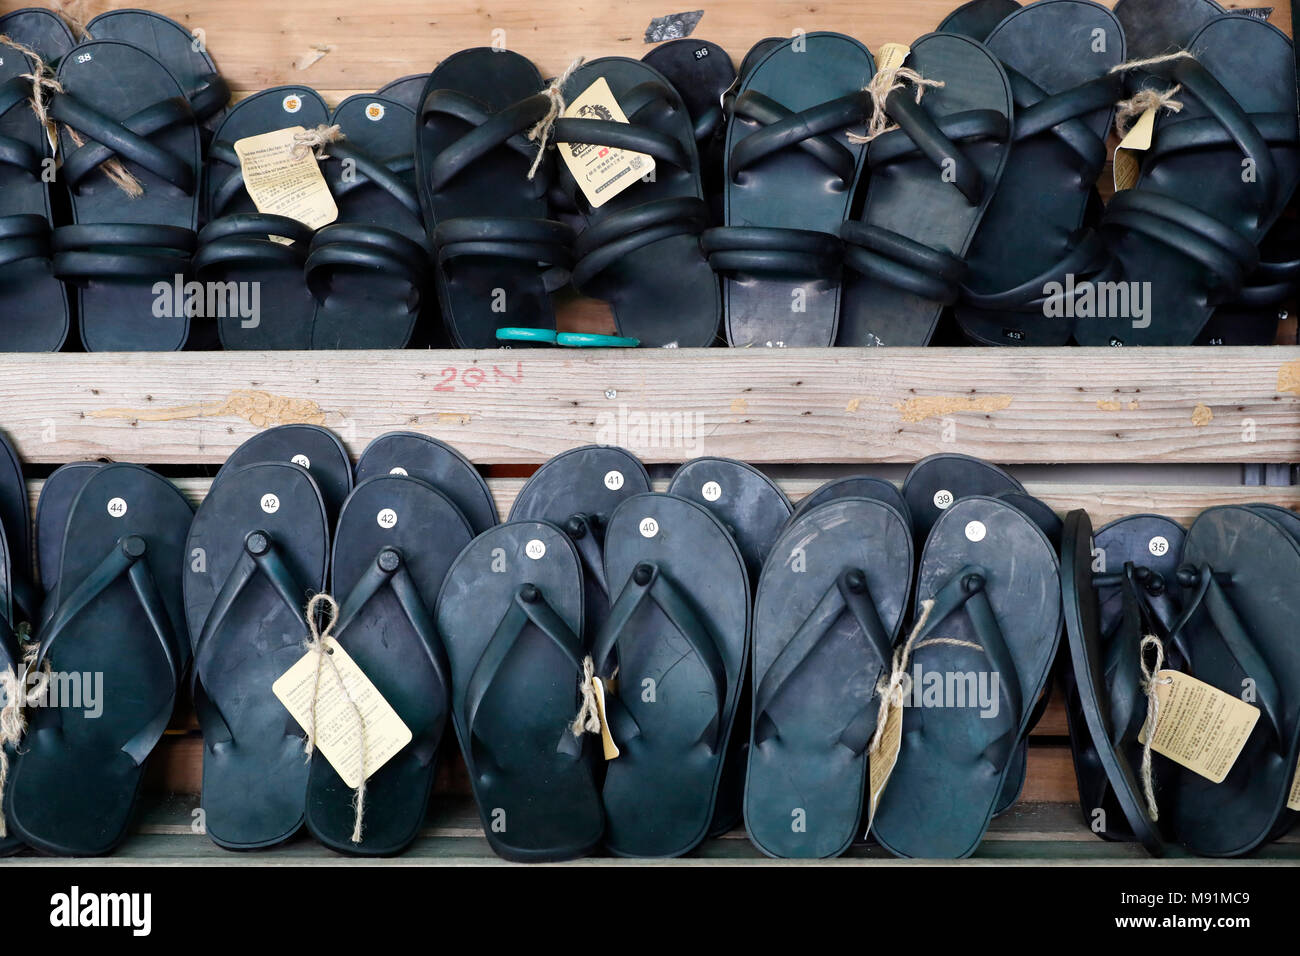 Ho Chi Minh sandals made from tyres.  Hanoi. Vietnam. - Stock Image